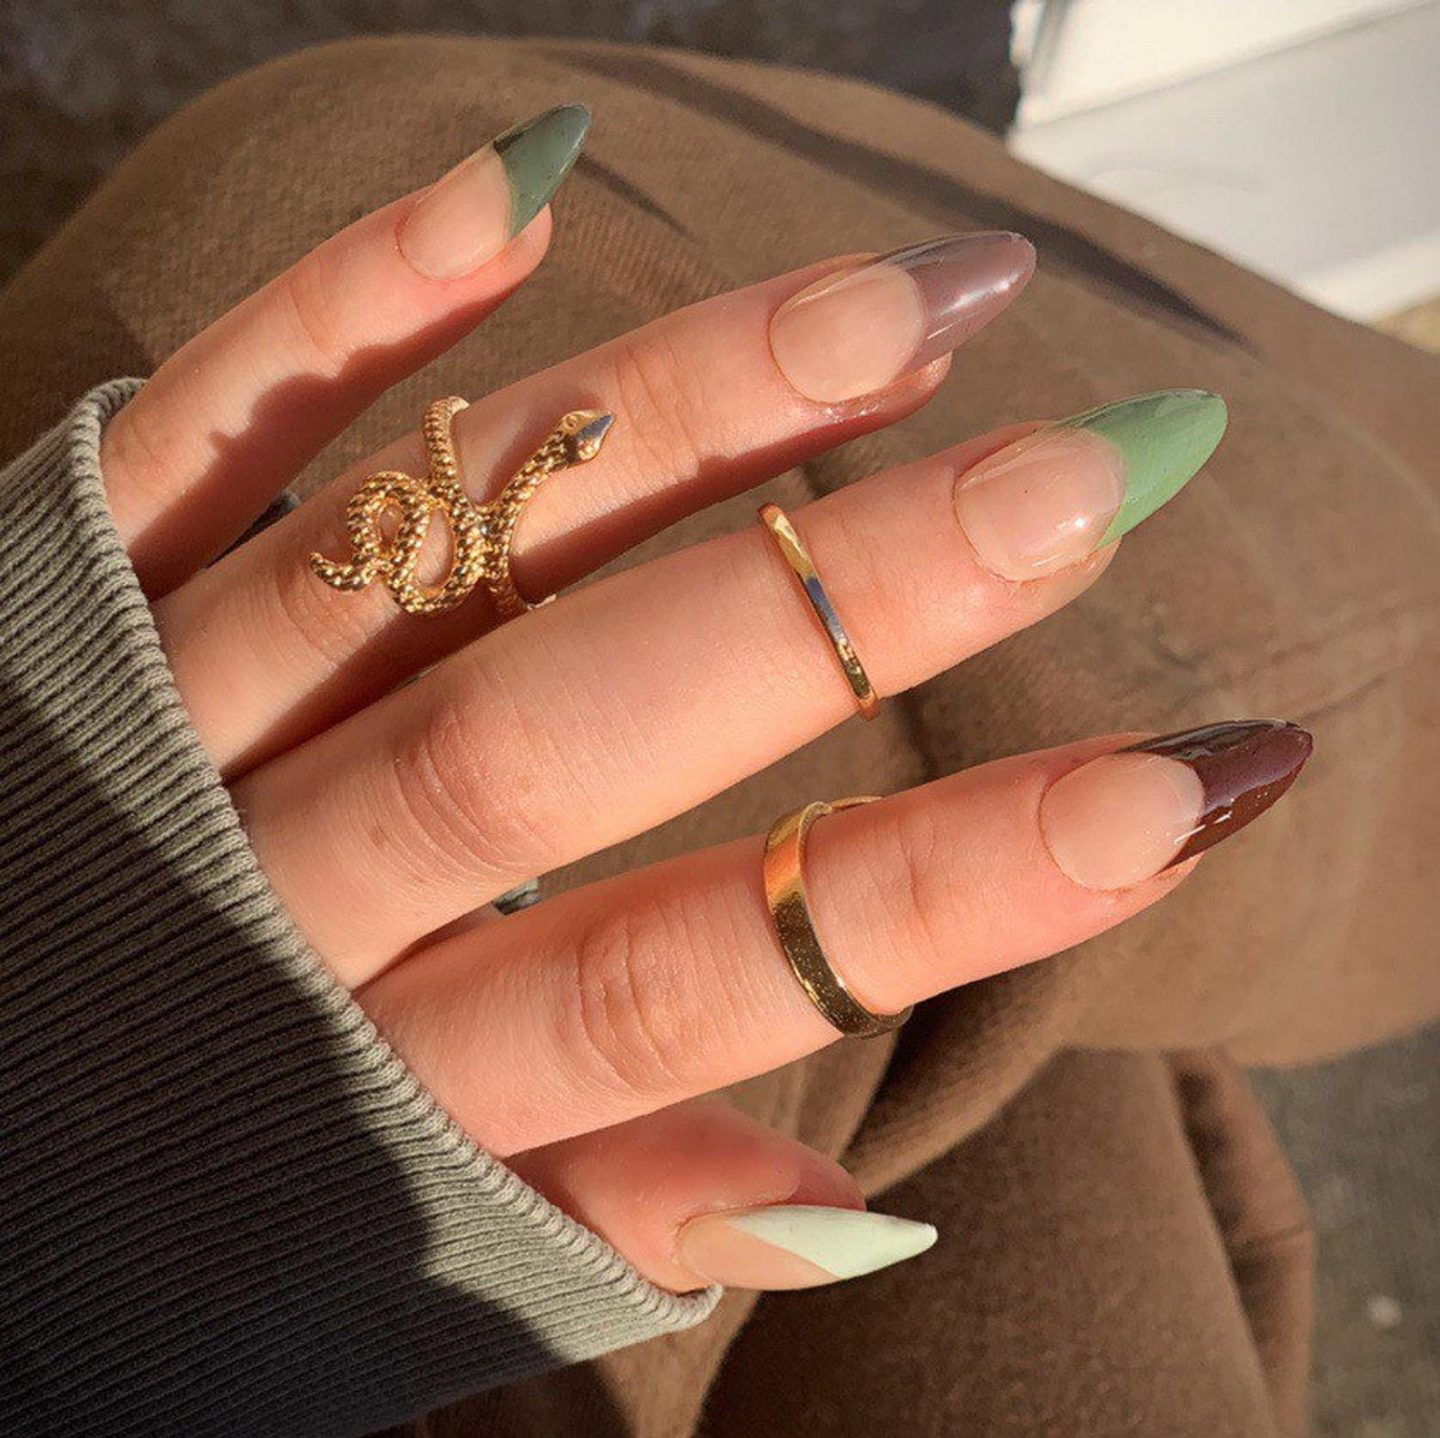 Green and brown French tip nails